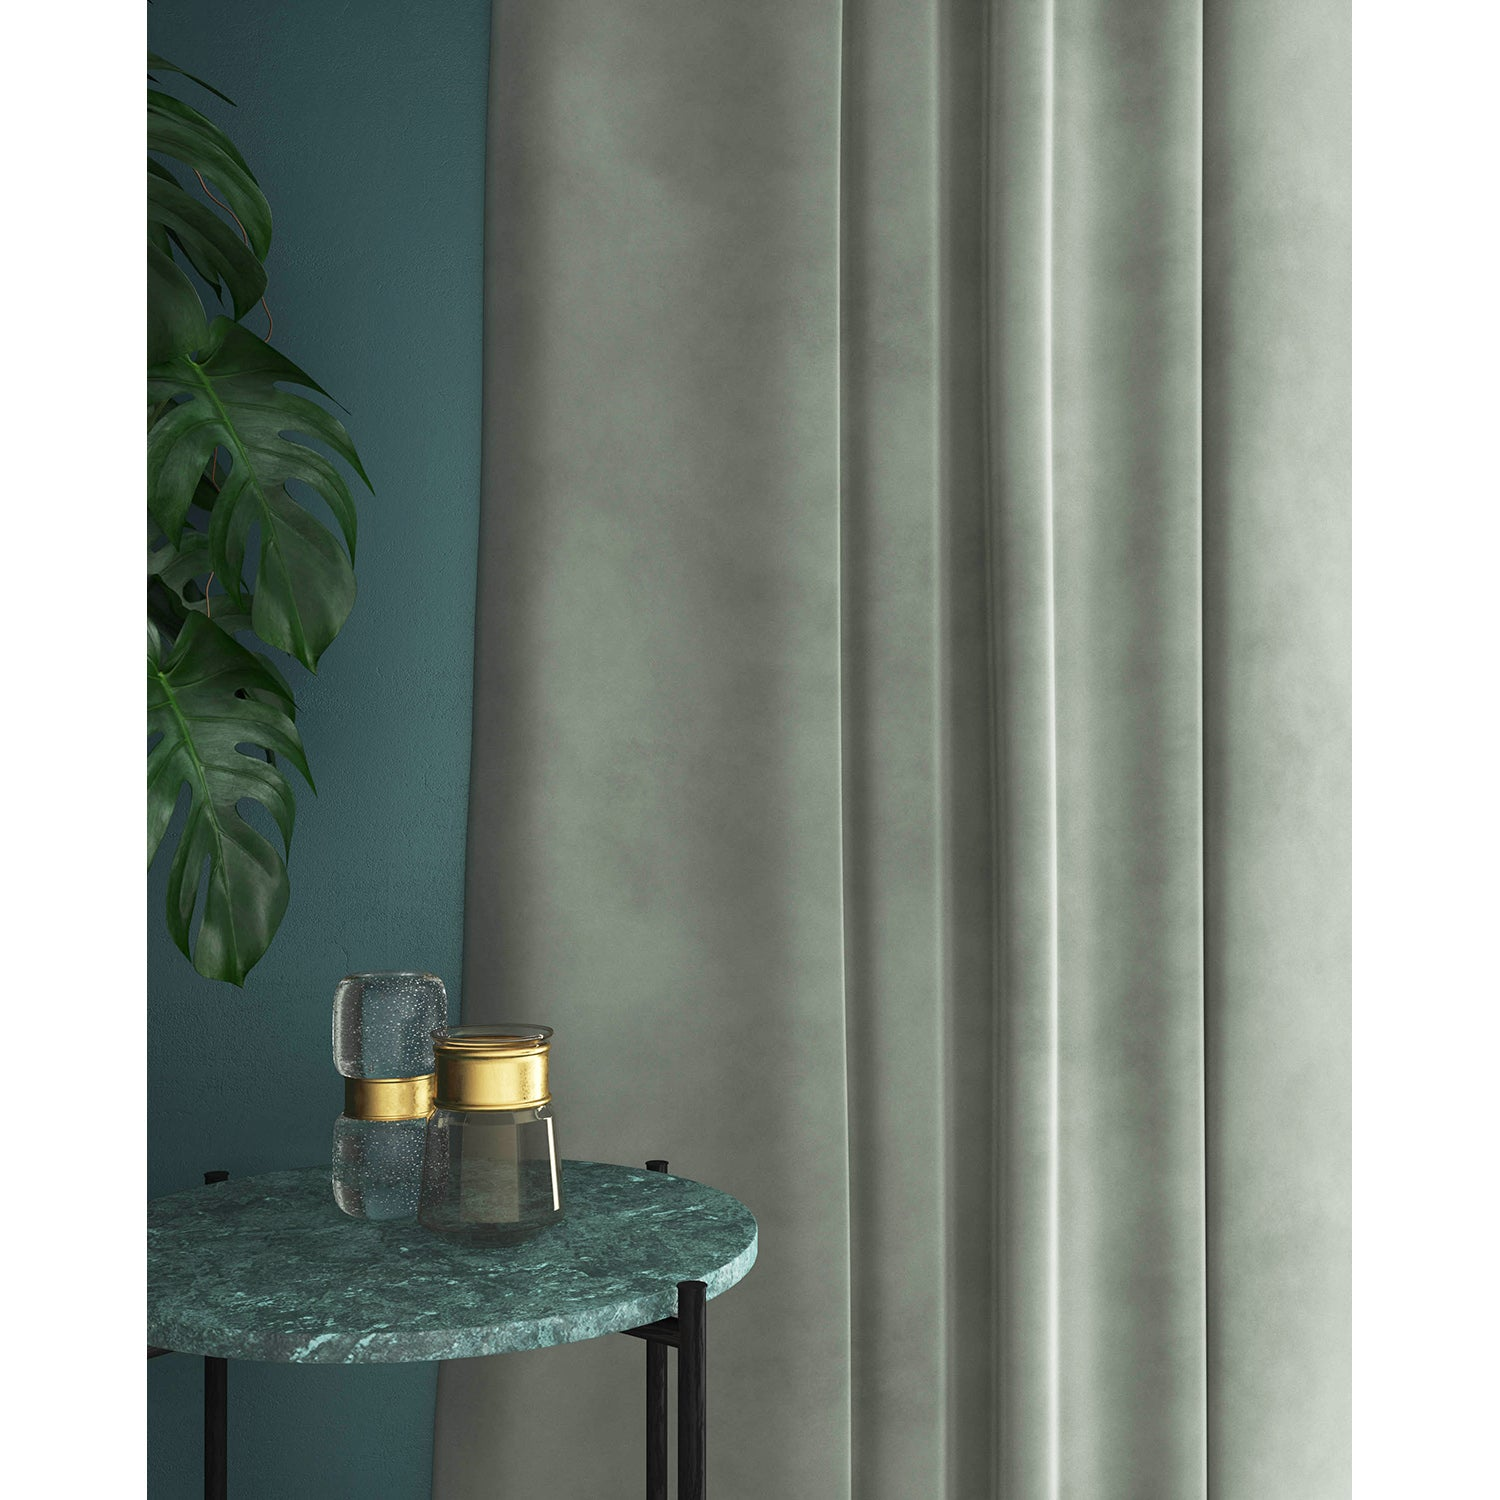 Curtains in a light grey plain velvet fabric with a stain resistant finish